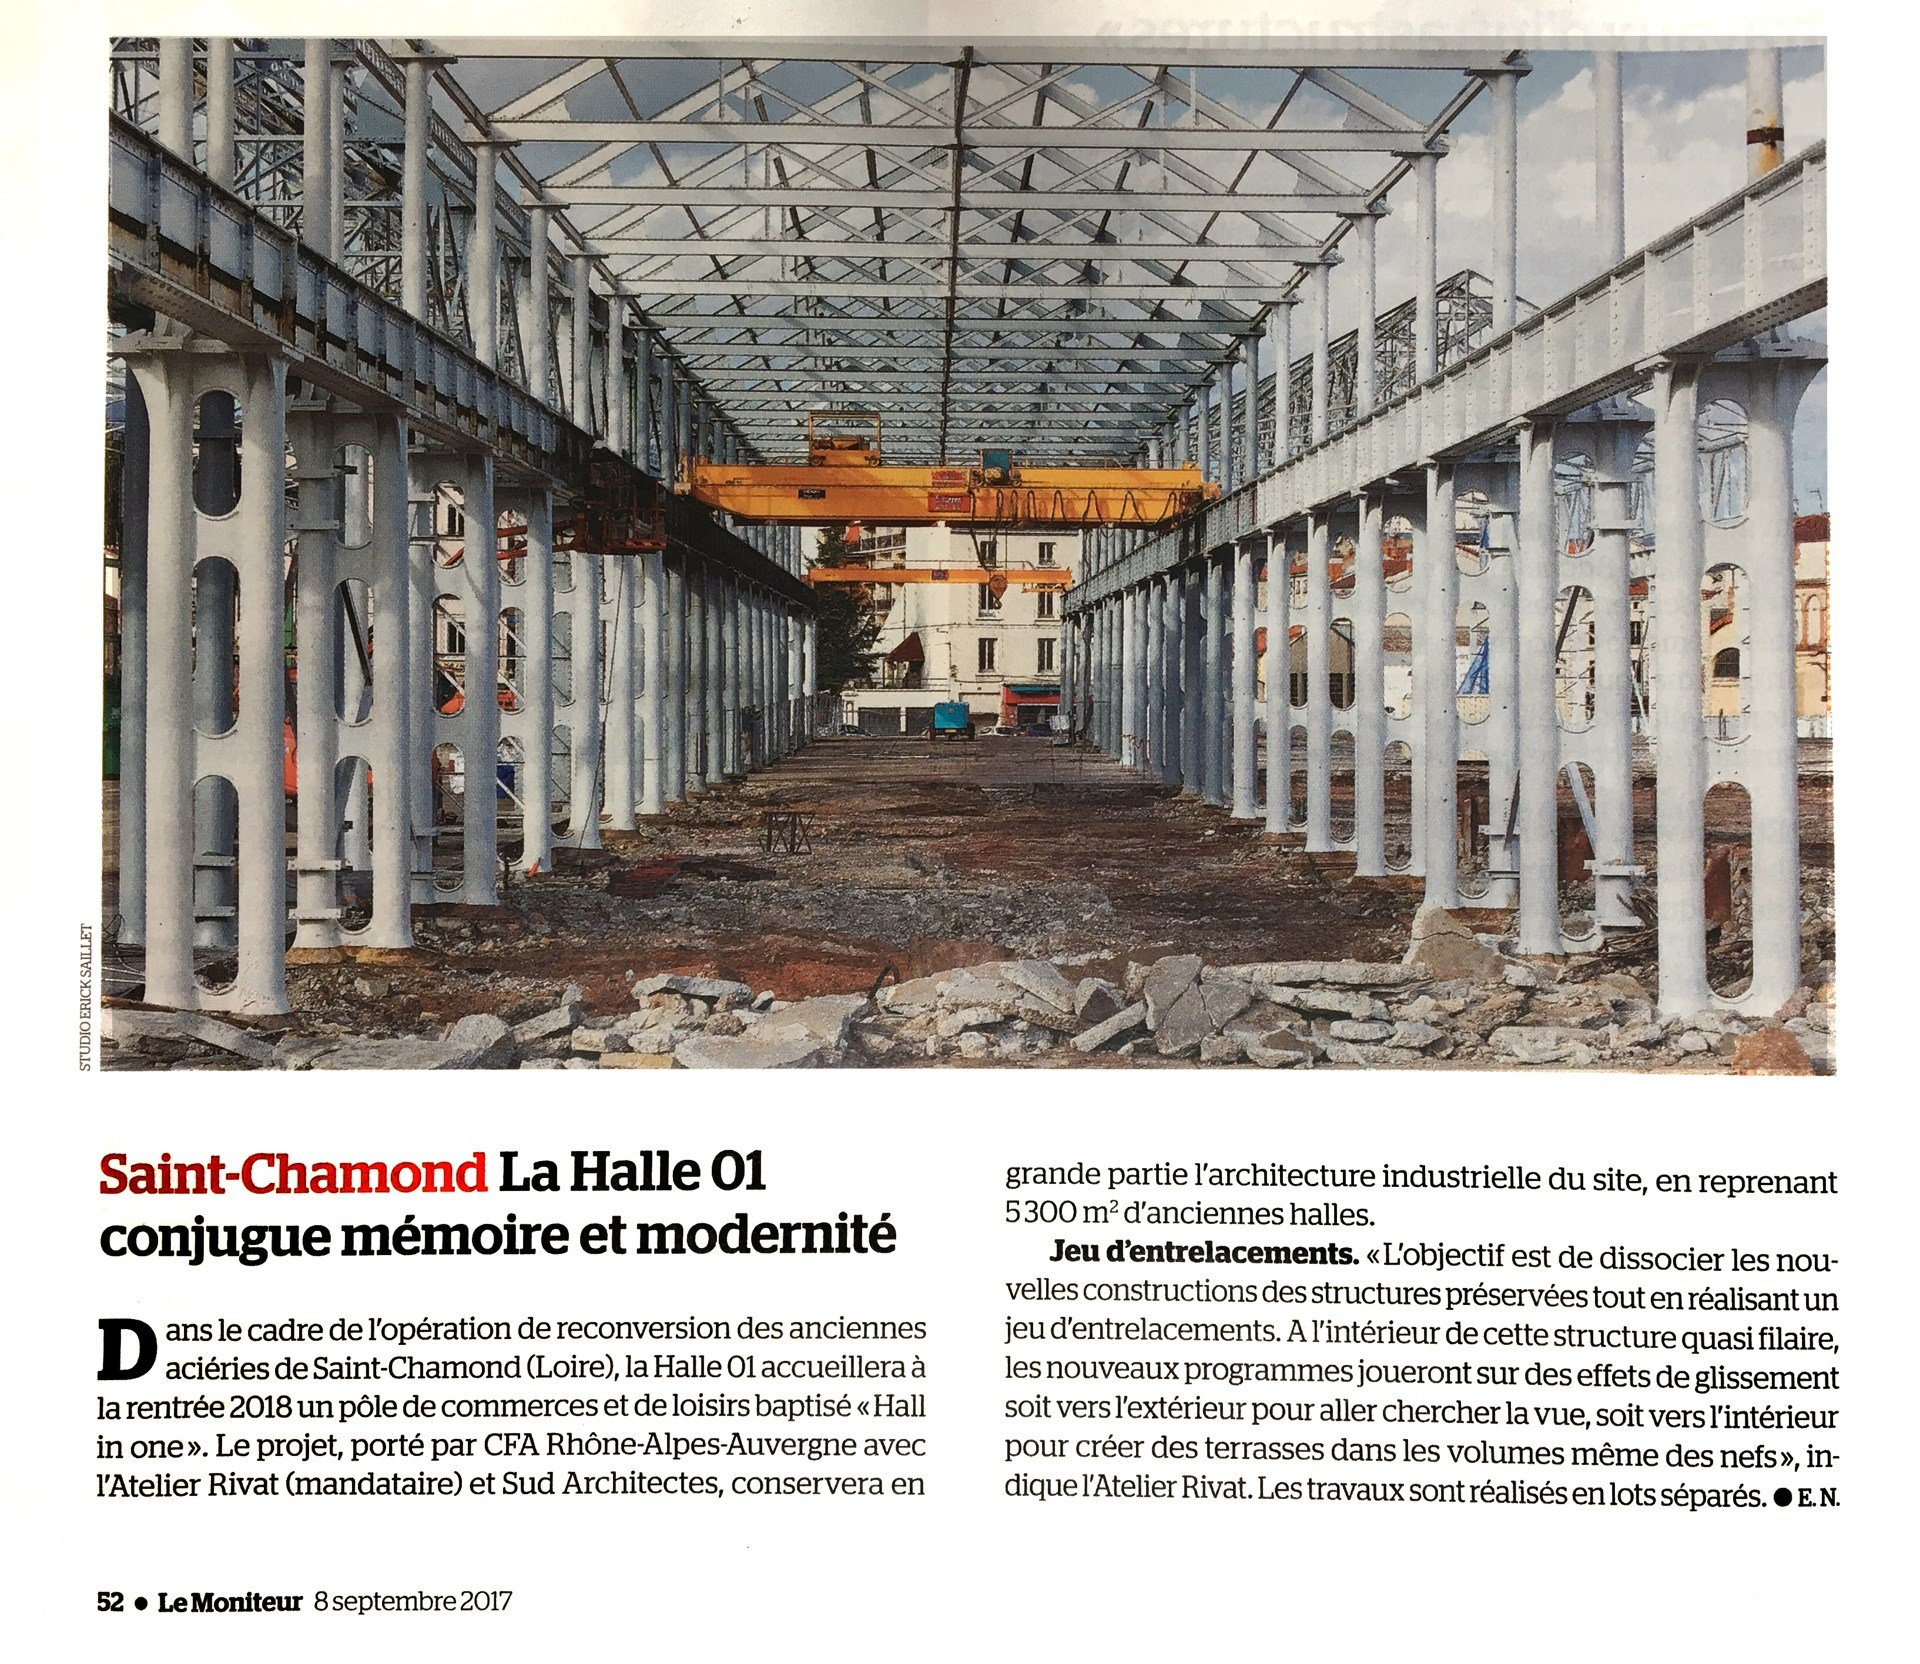 Reconversion Architecte Nouvel Article Sur La Reconversion Des Anciennes Aciéries De Saint